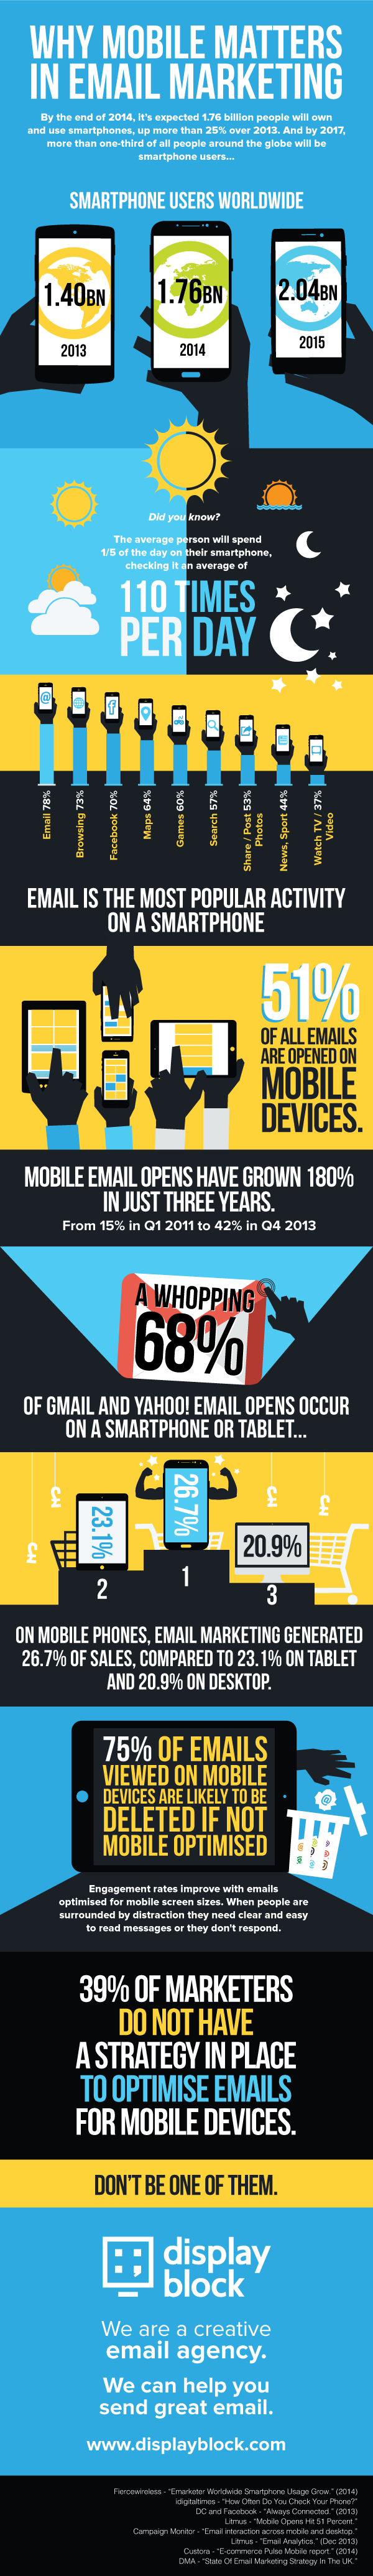 why-mobile-matters